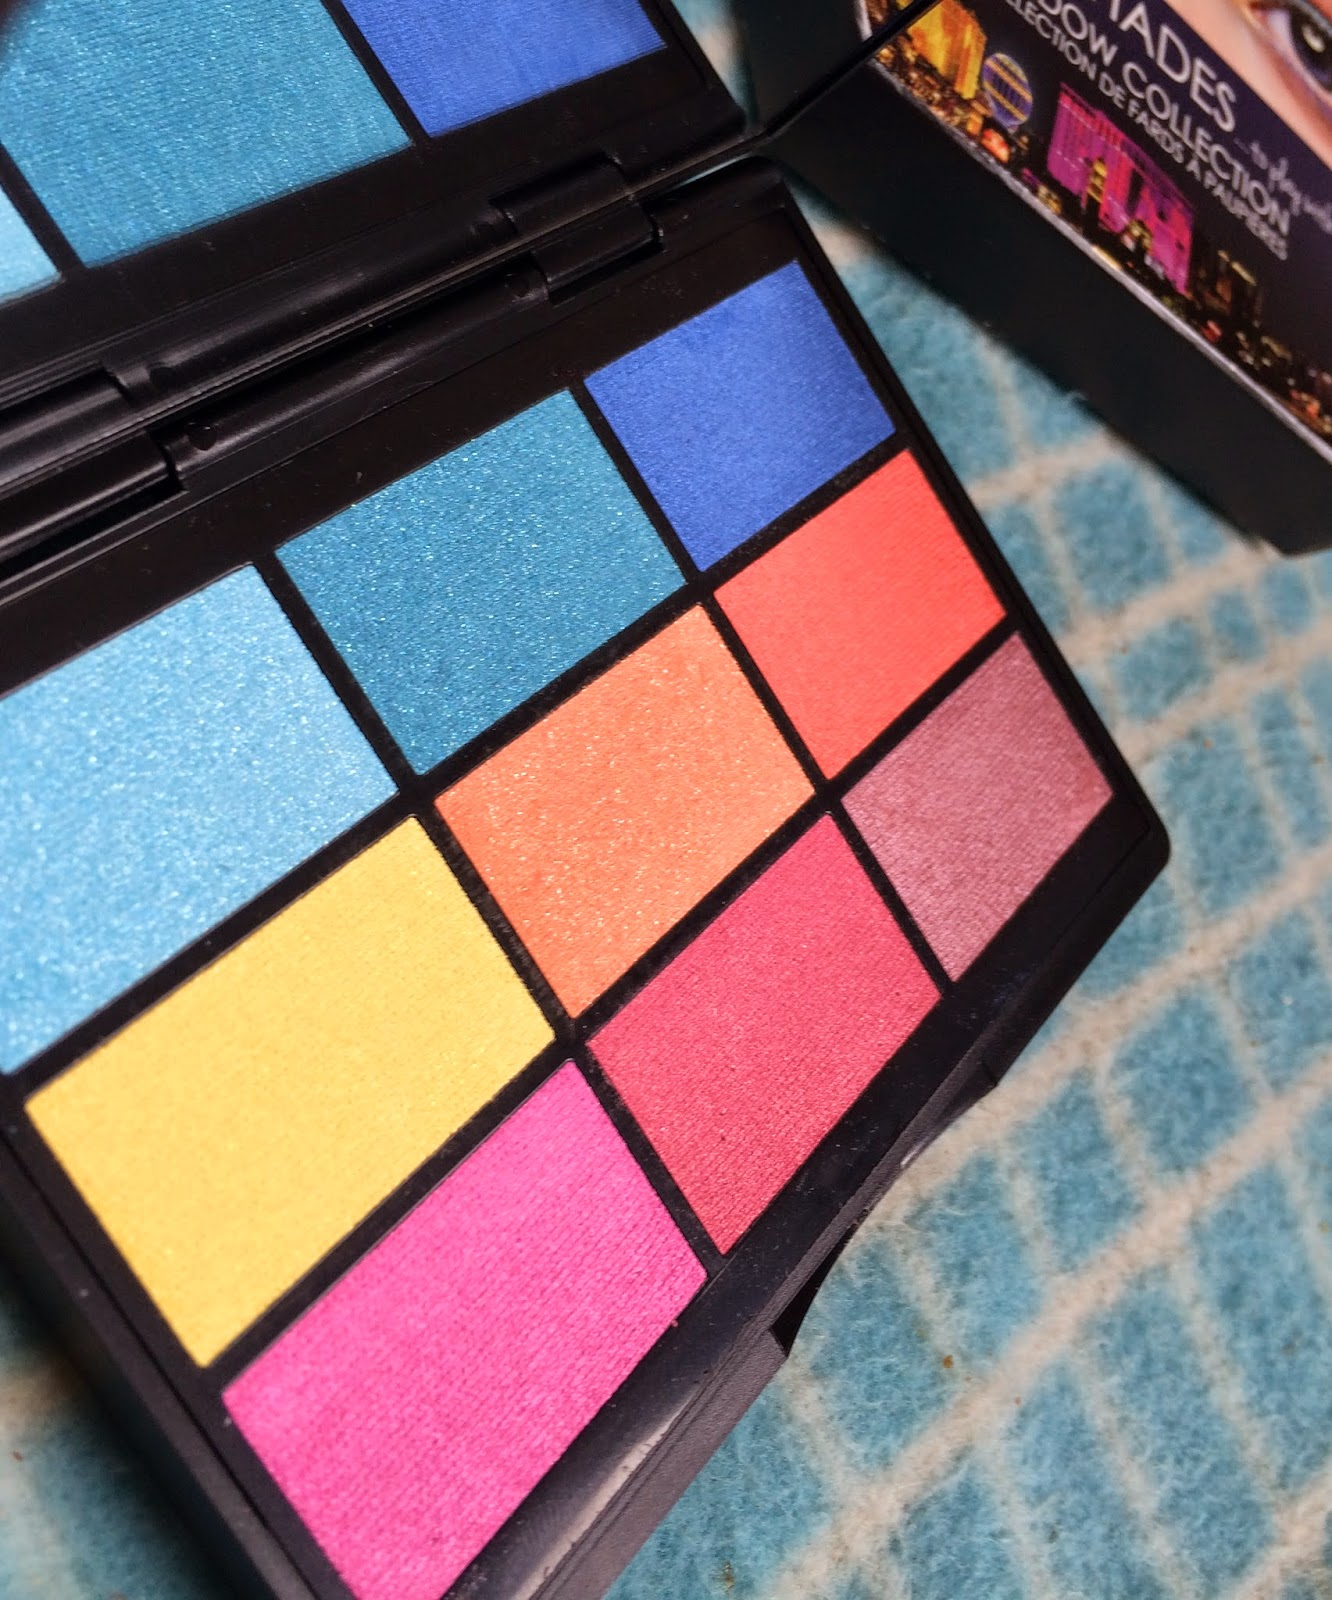 gosh-to-play-with-in-vegas-palette-shades-review